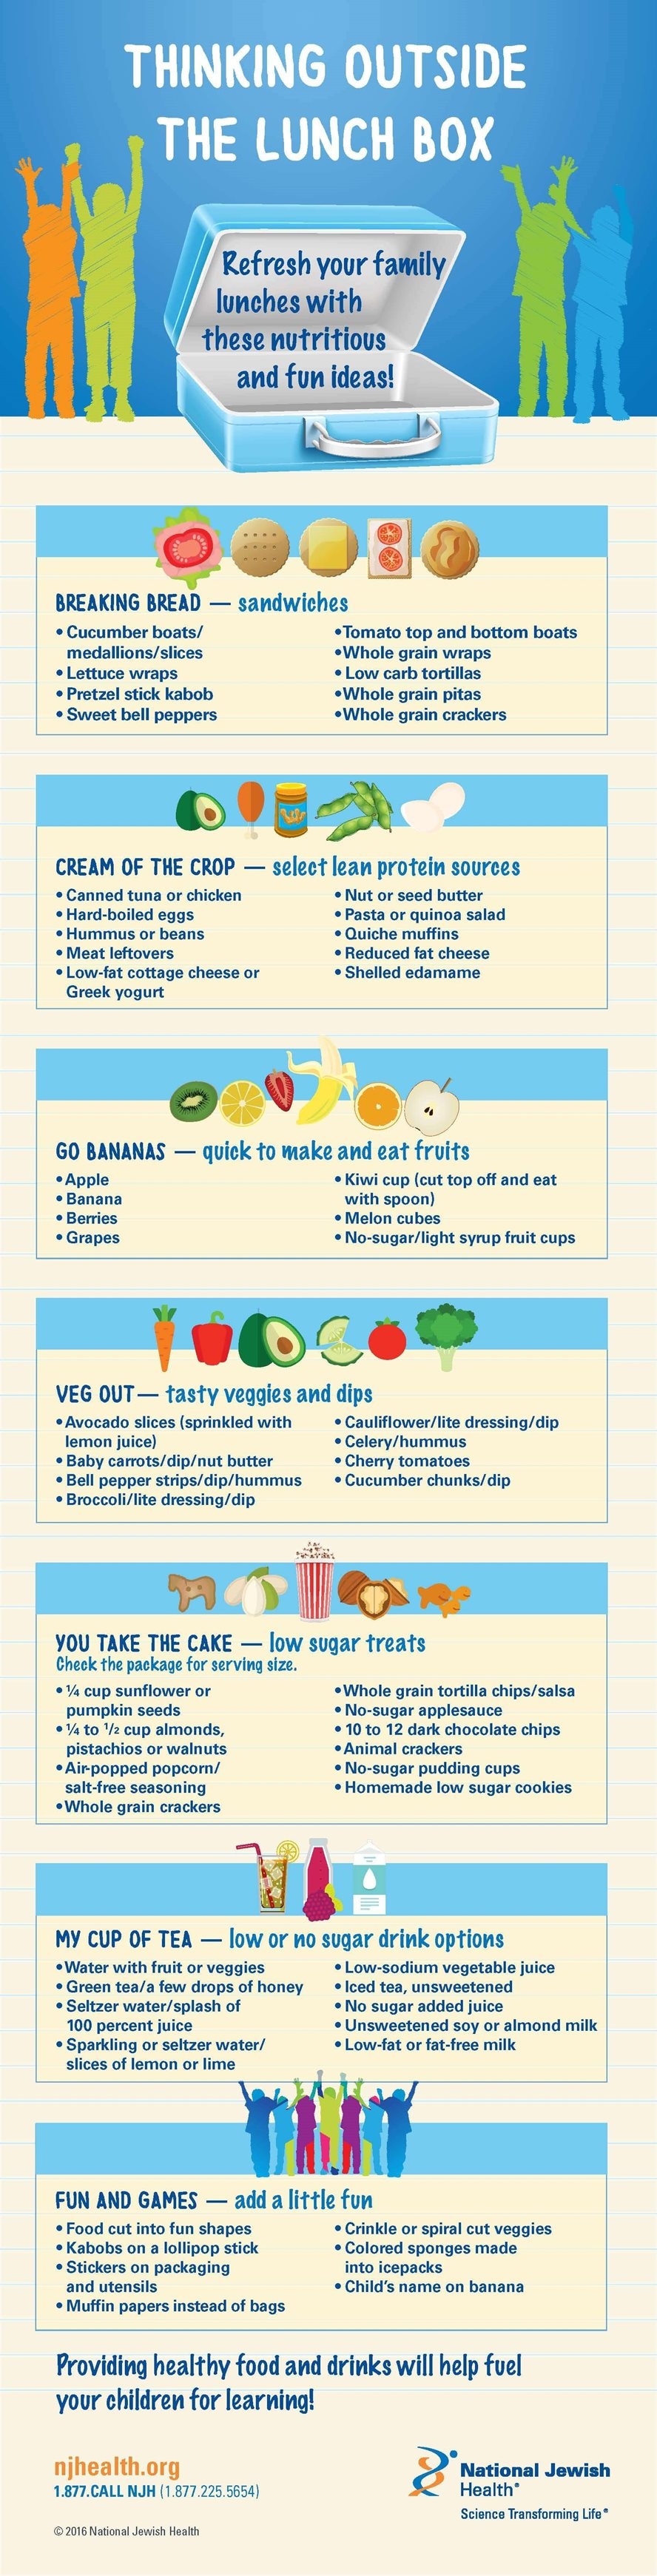 Thinking Outside The Lunchbox Infographic